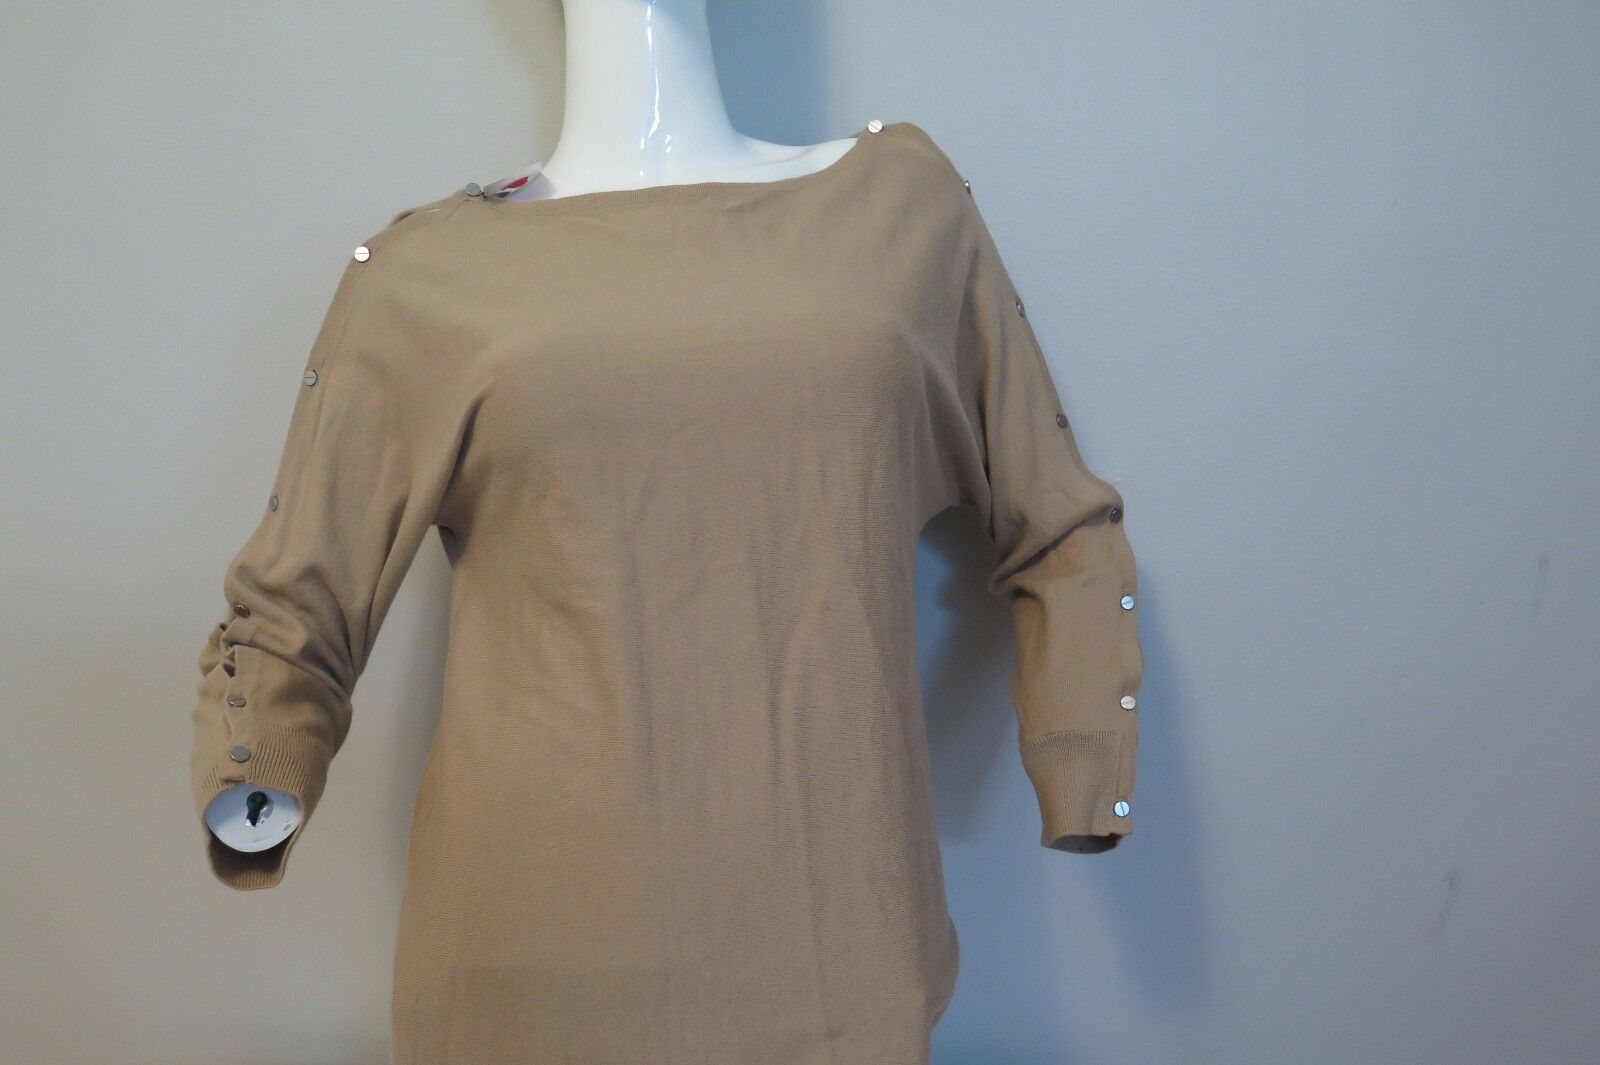 MAGASCHONI camel sweater with button closer on both sleeves size M 75%OFF